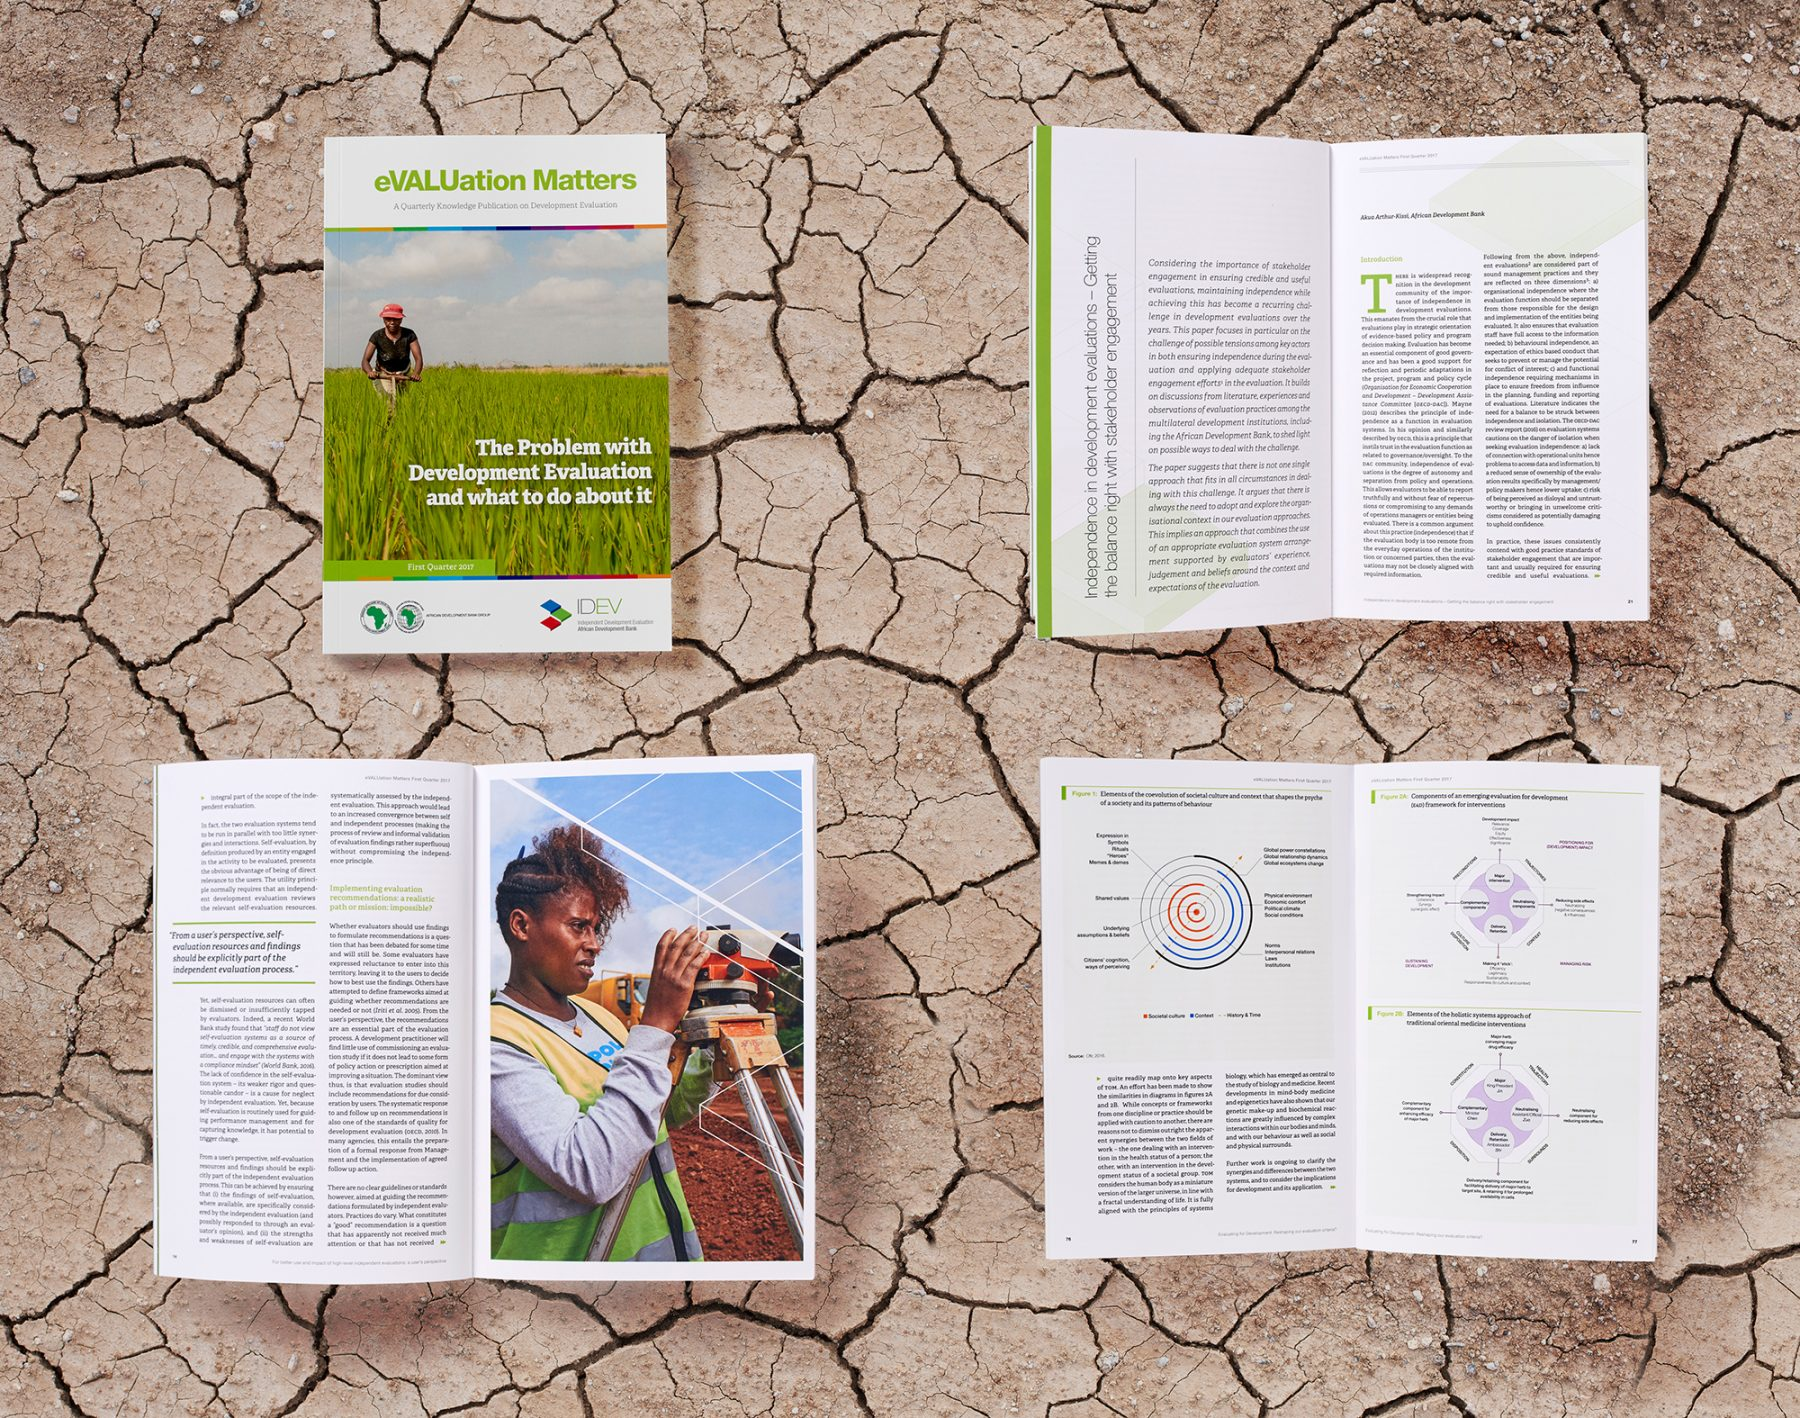 AfDB IDEV – eVALUation Matters quarterly magazine